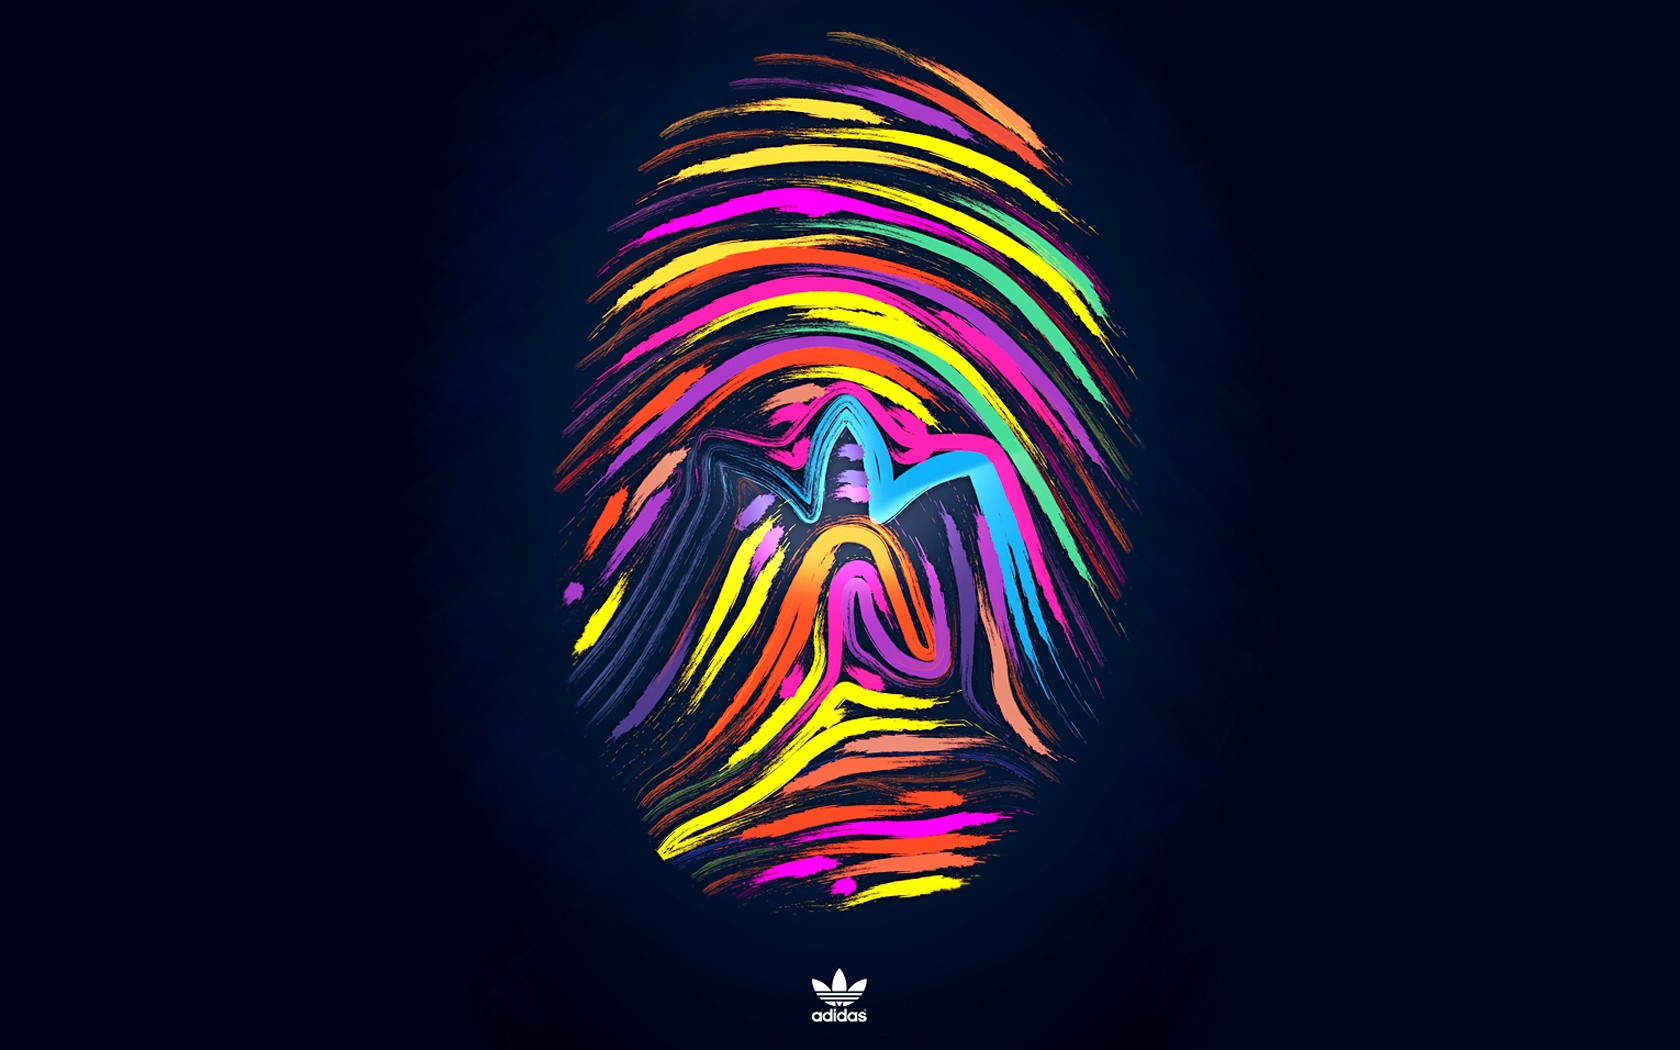 Adidas Wallpapers 4USkYcom 1680x1050